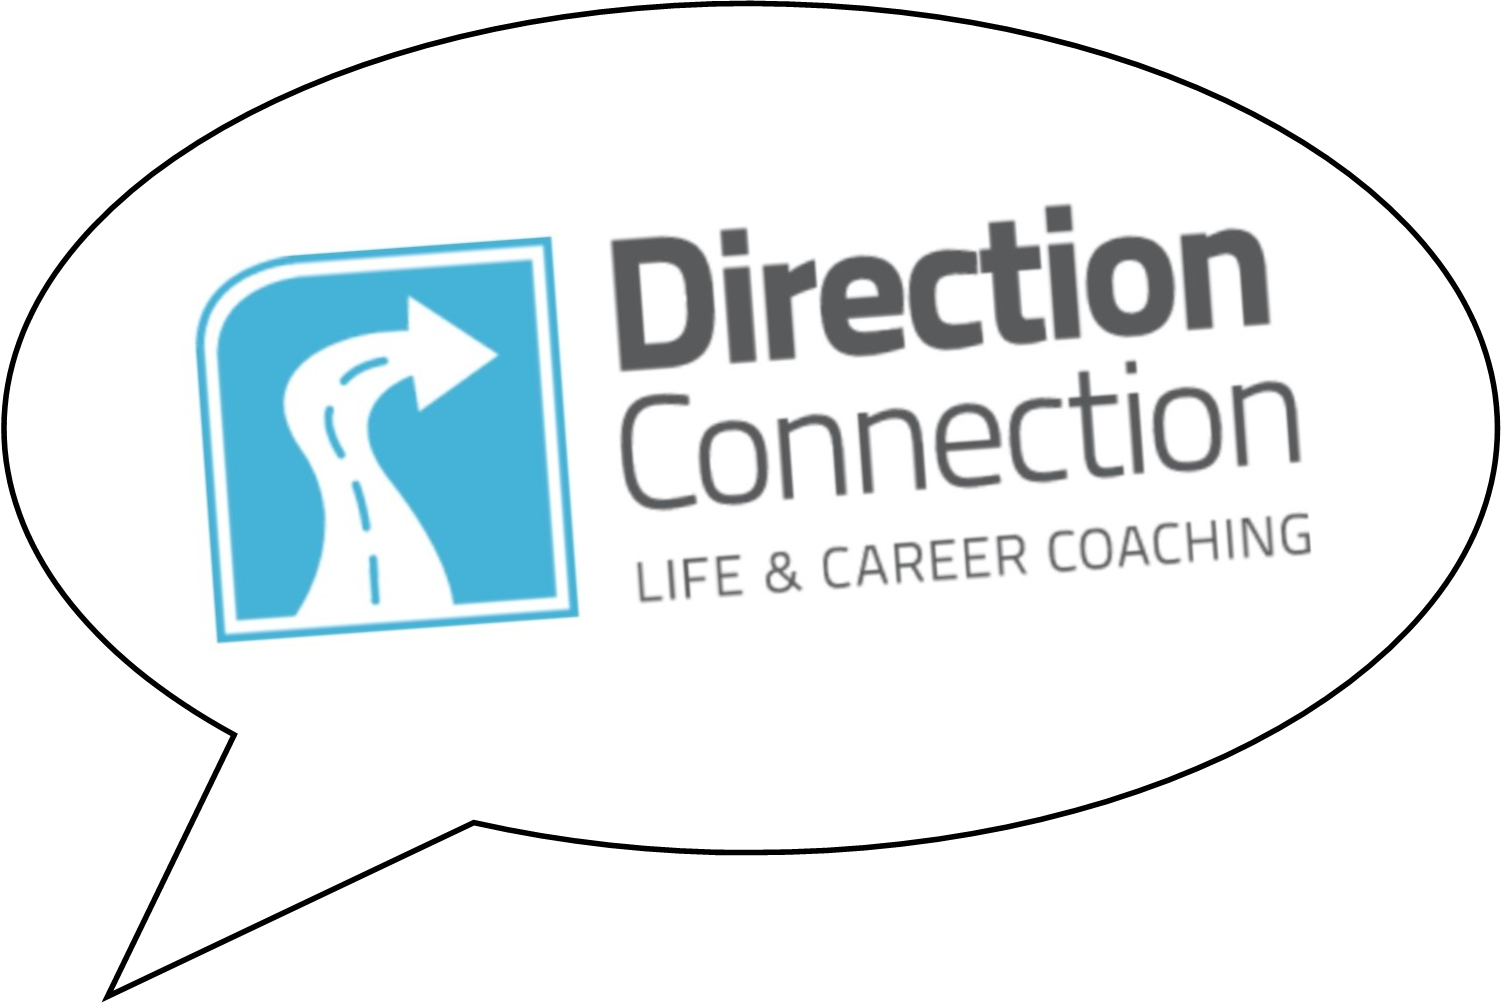 Direction Connection